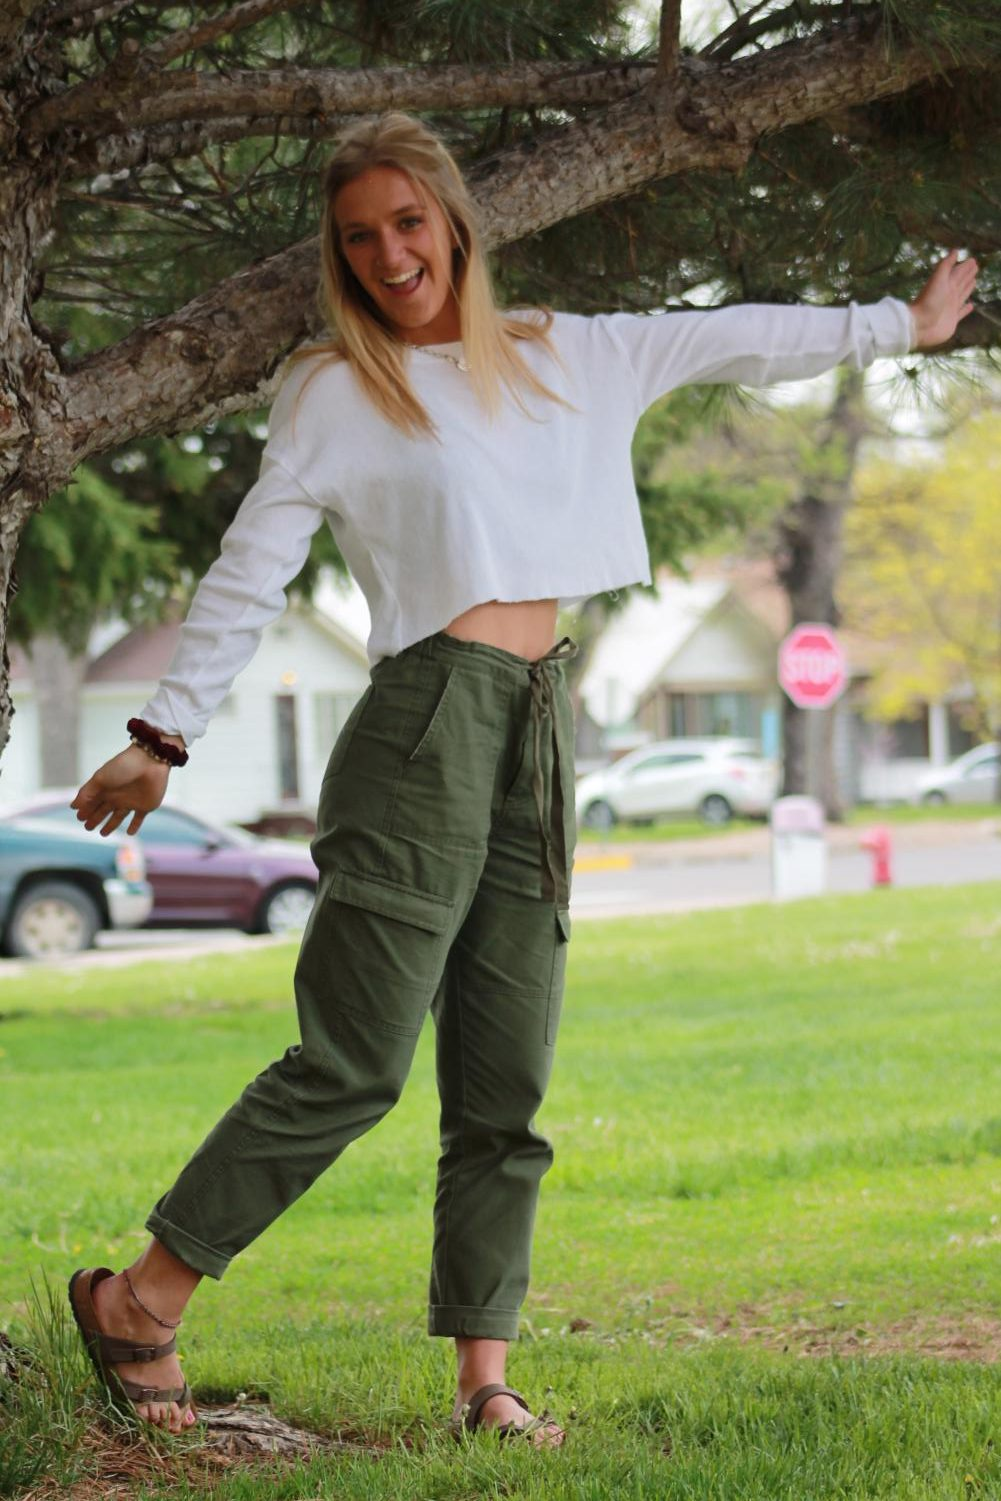 Matea Floryance (20) poses in her green cargo pants and white crop top.